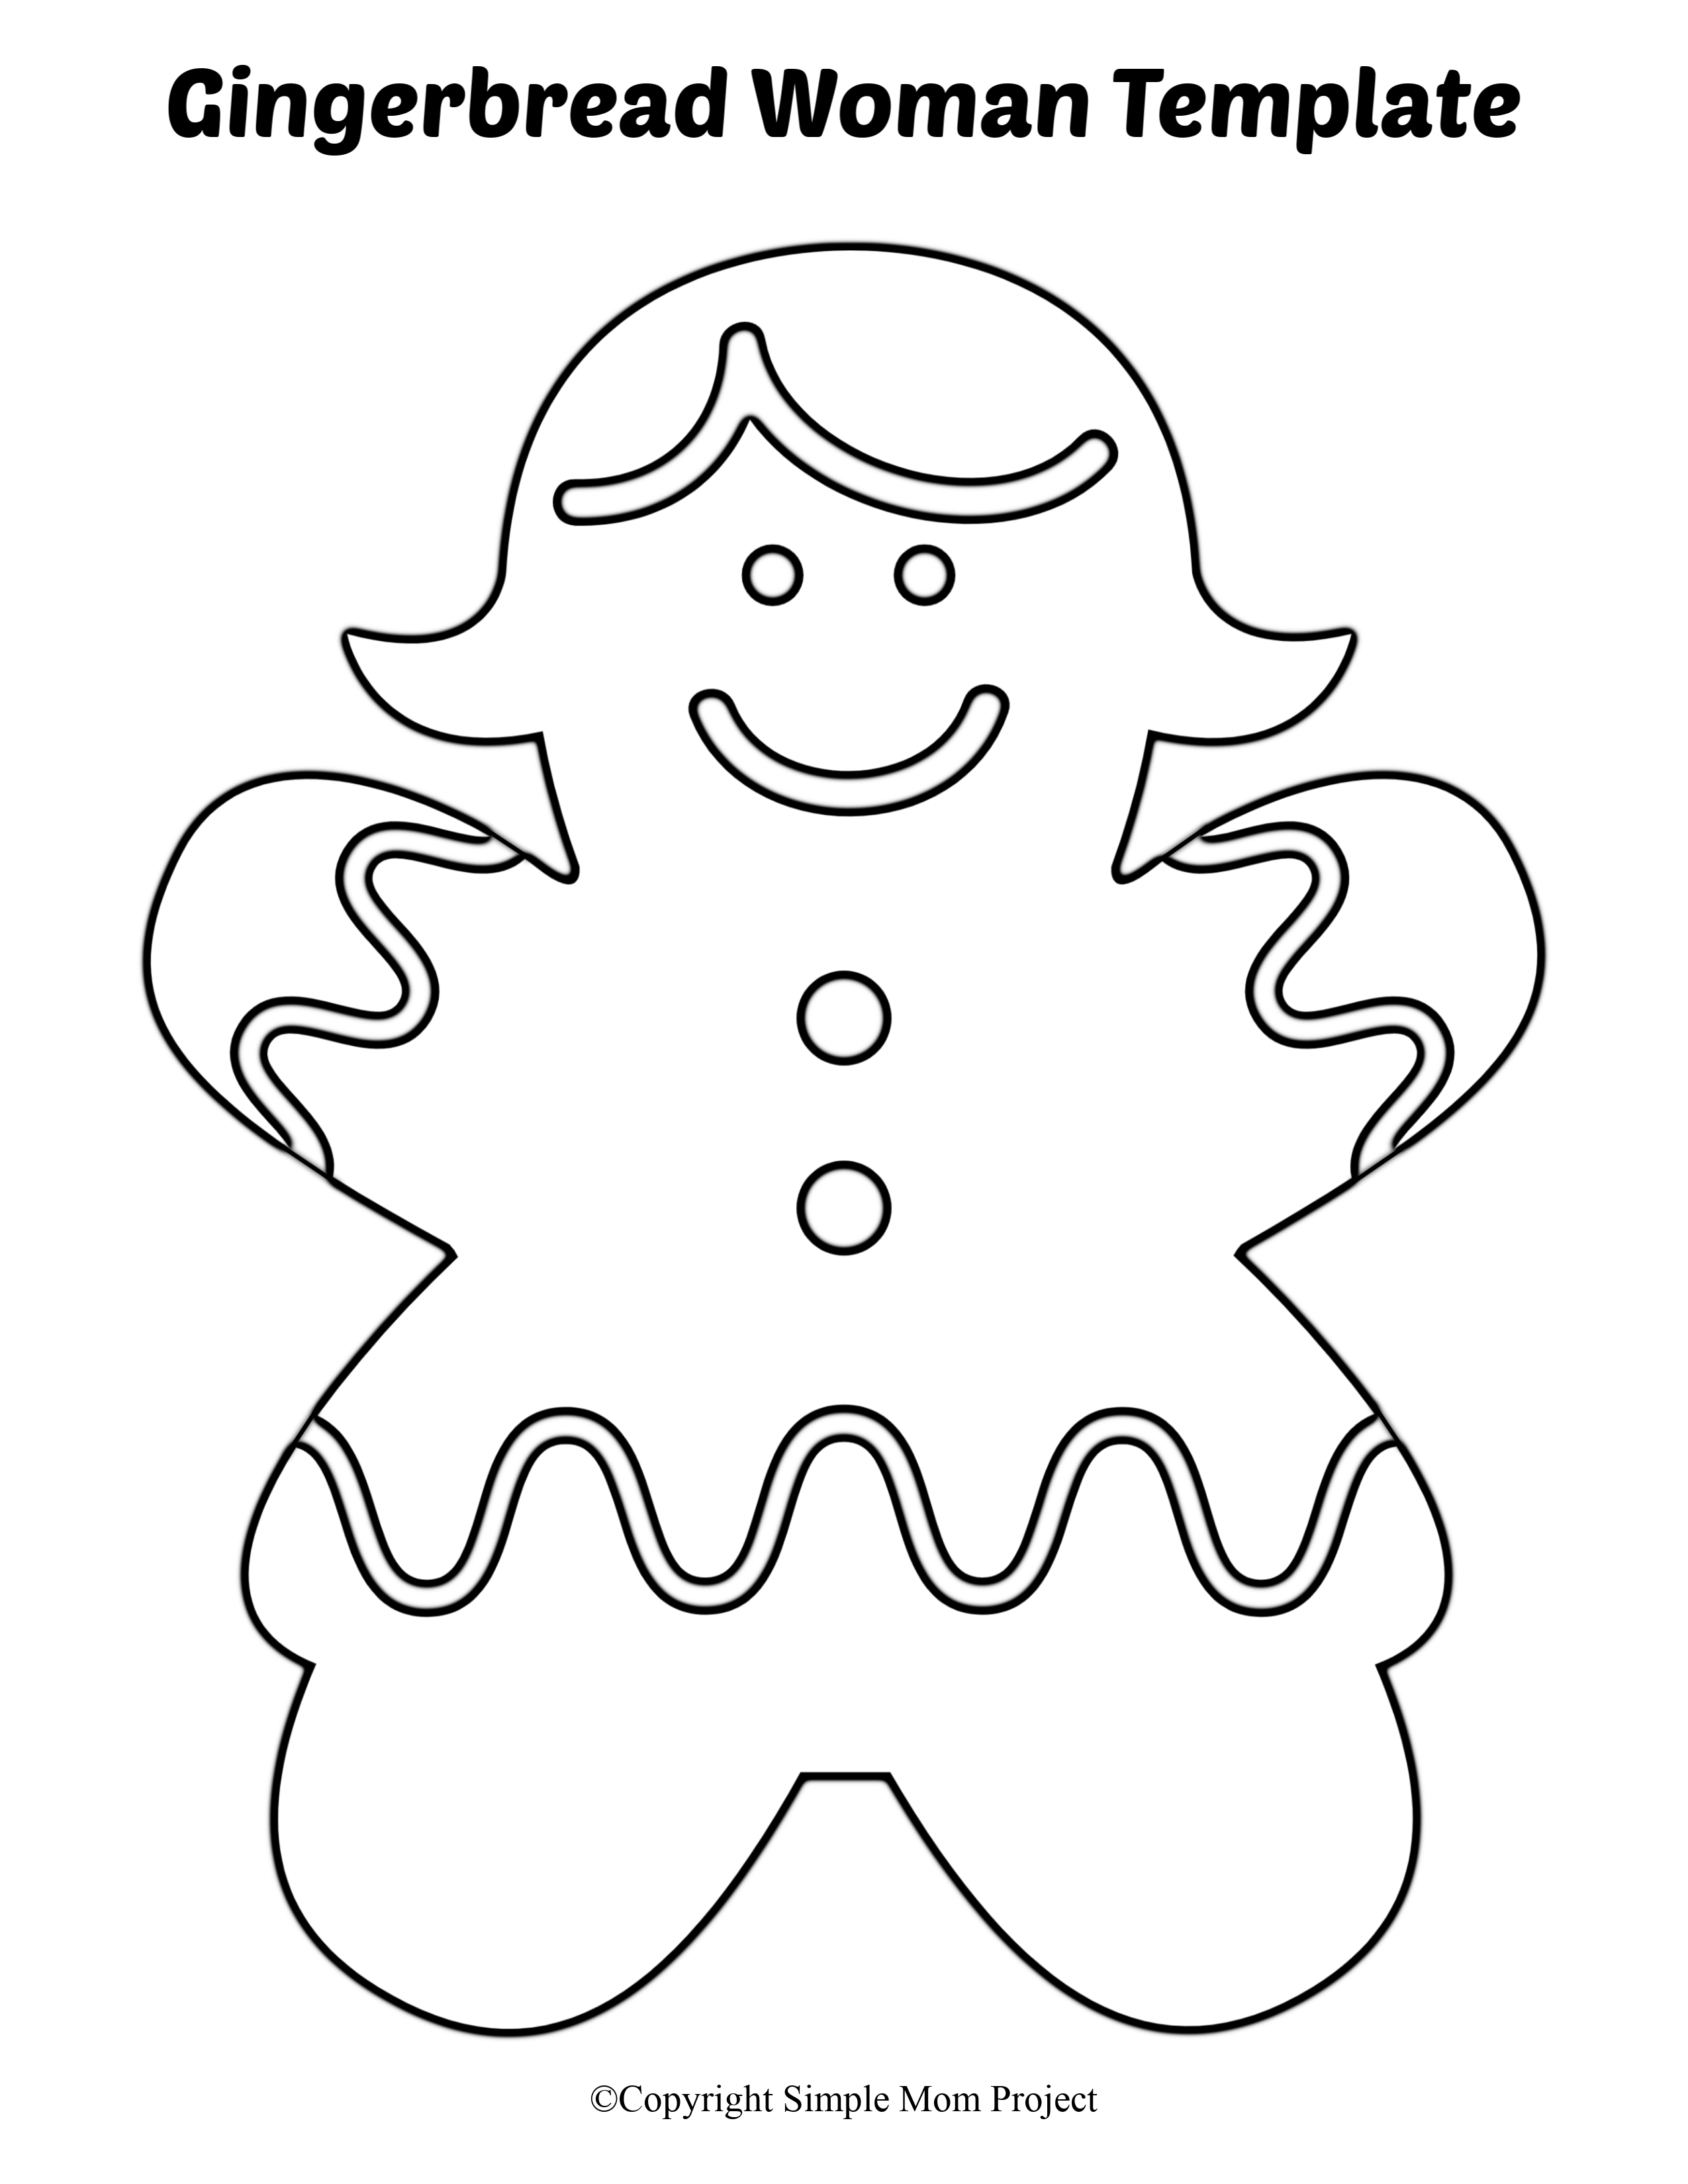 8 Free Printable Large and Small Gingerbread Man Templates